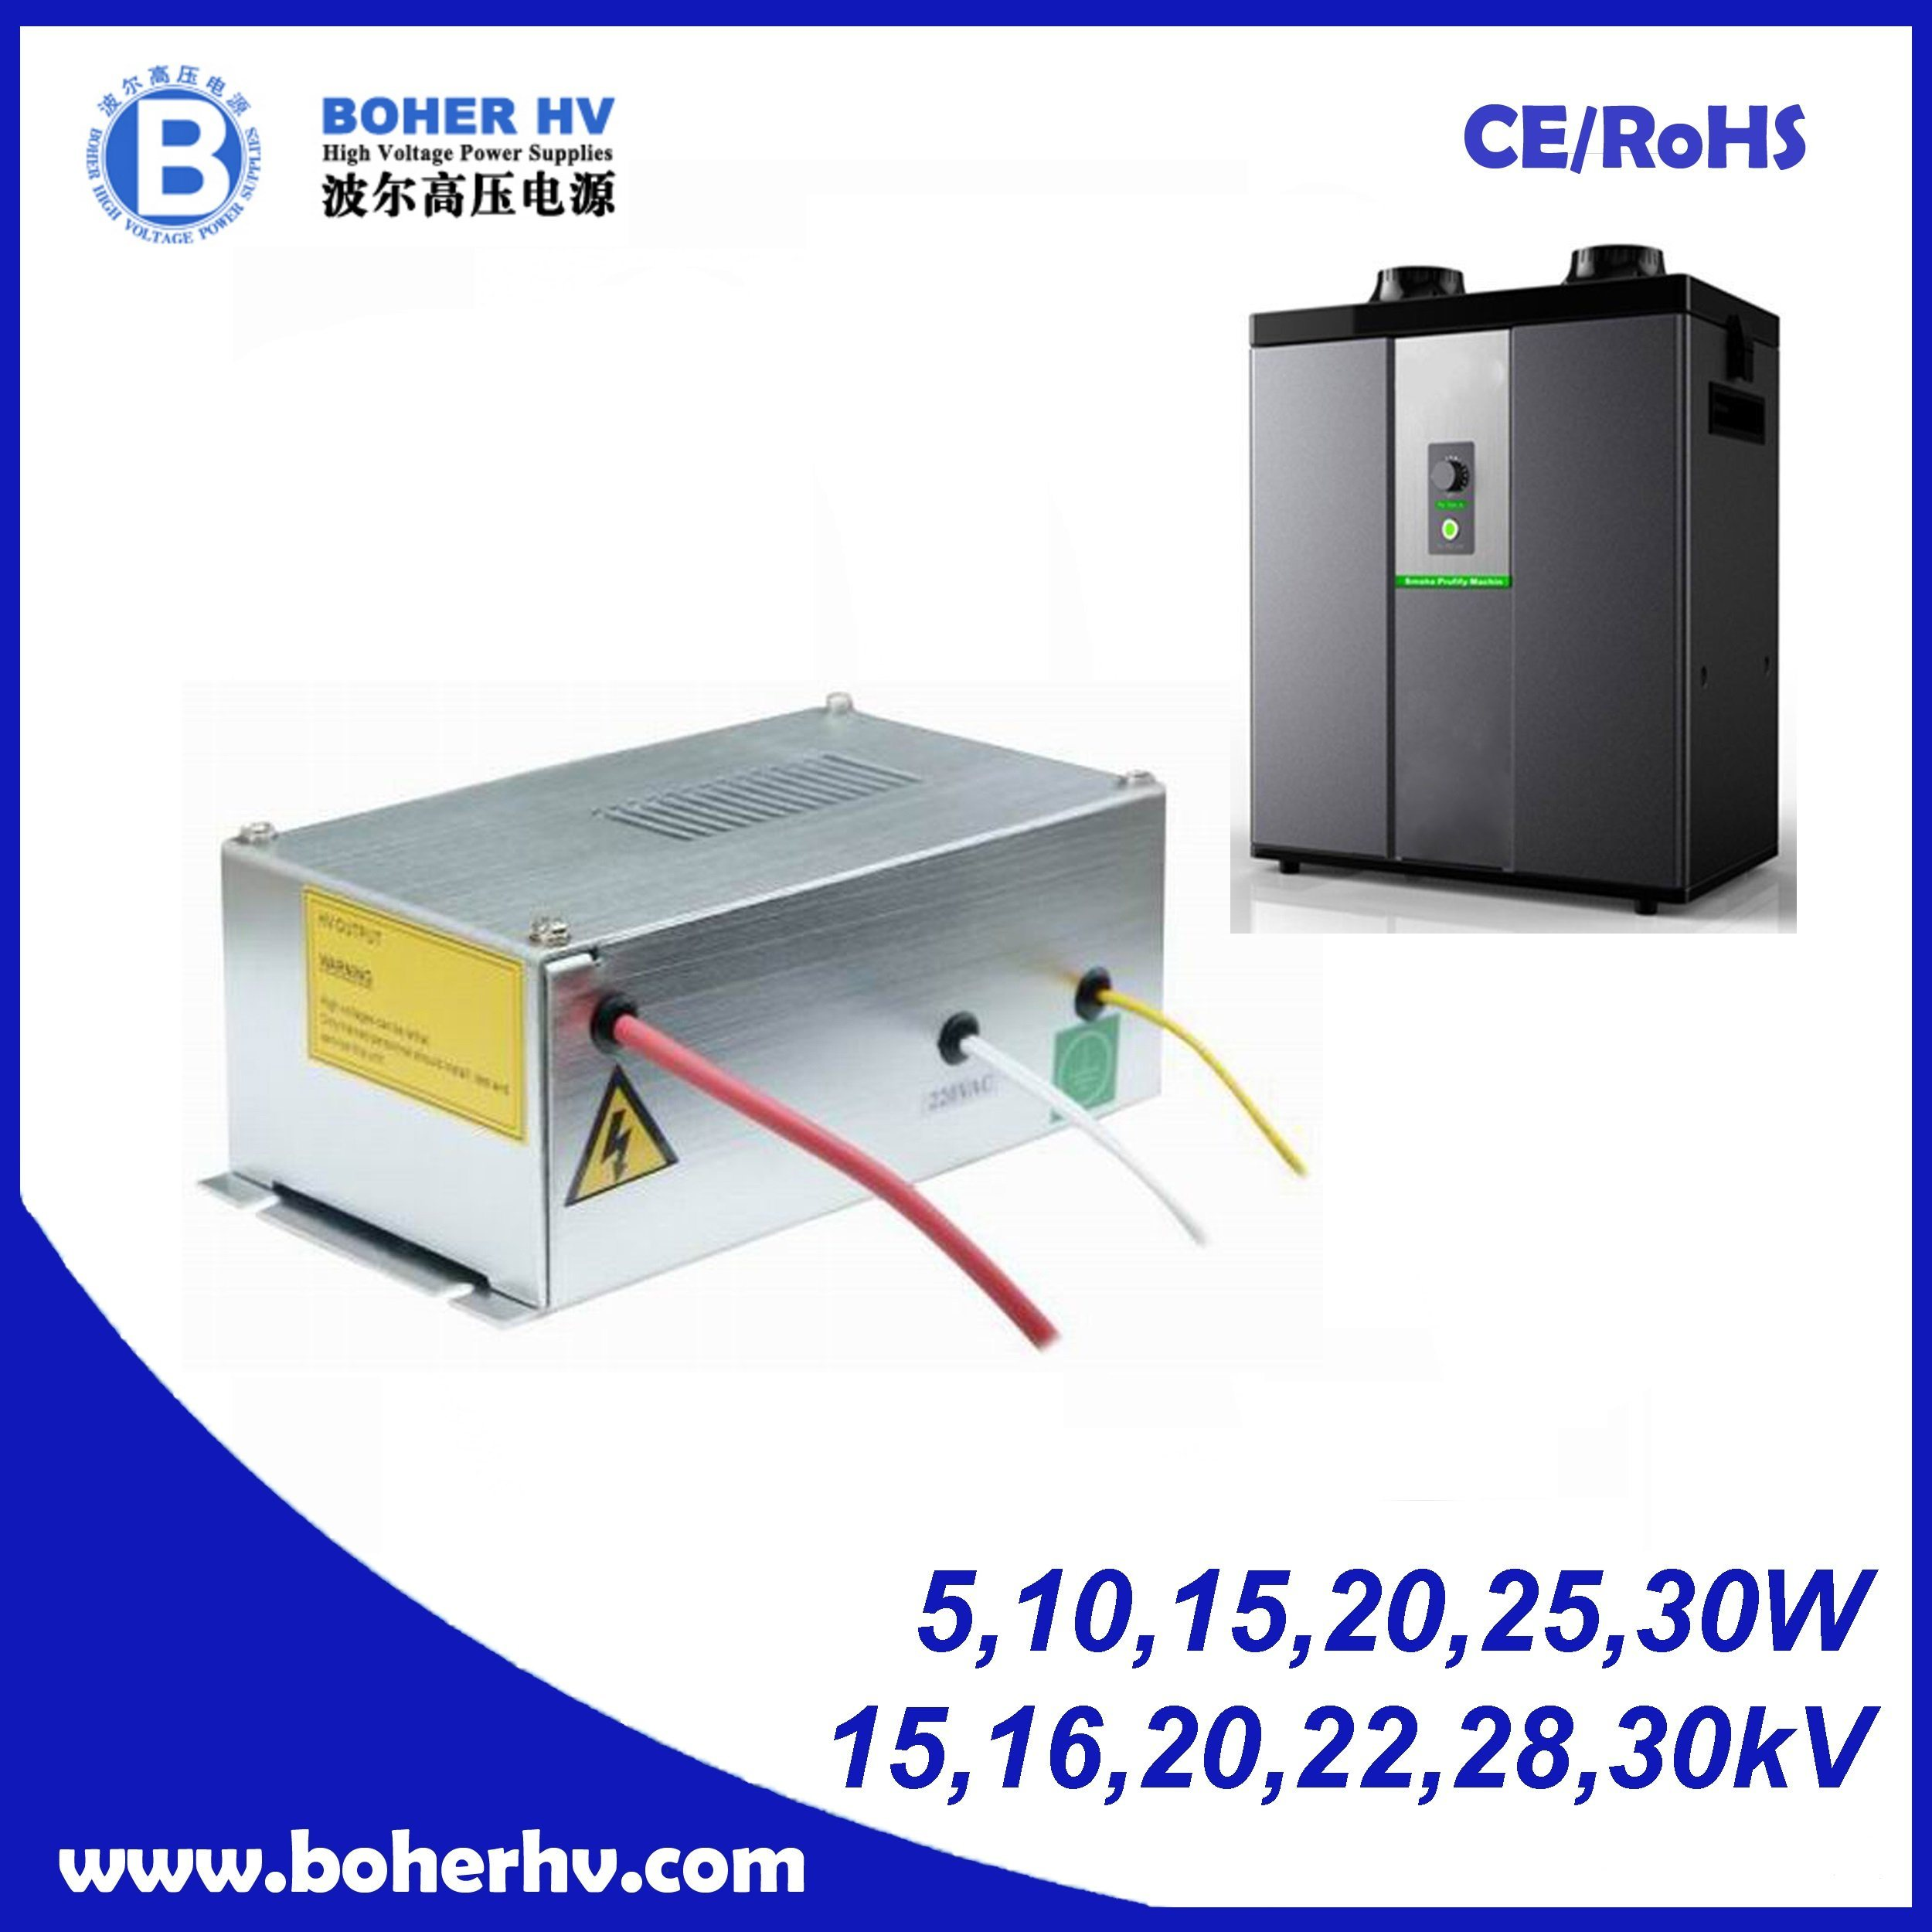 8kv /4kv Air Cleaning High Voltage Power Supply 30W CF02A